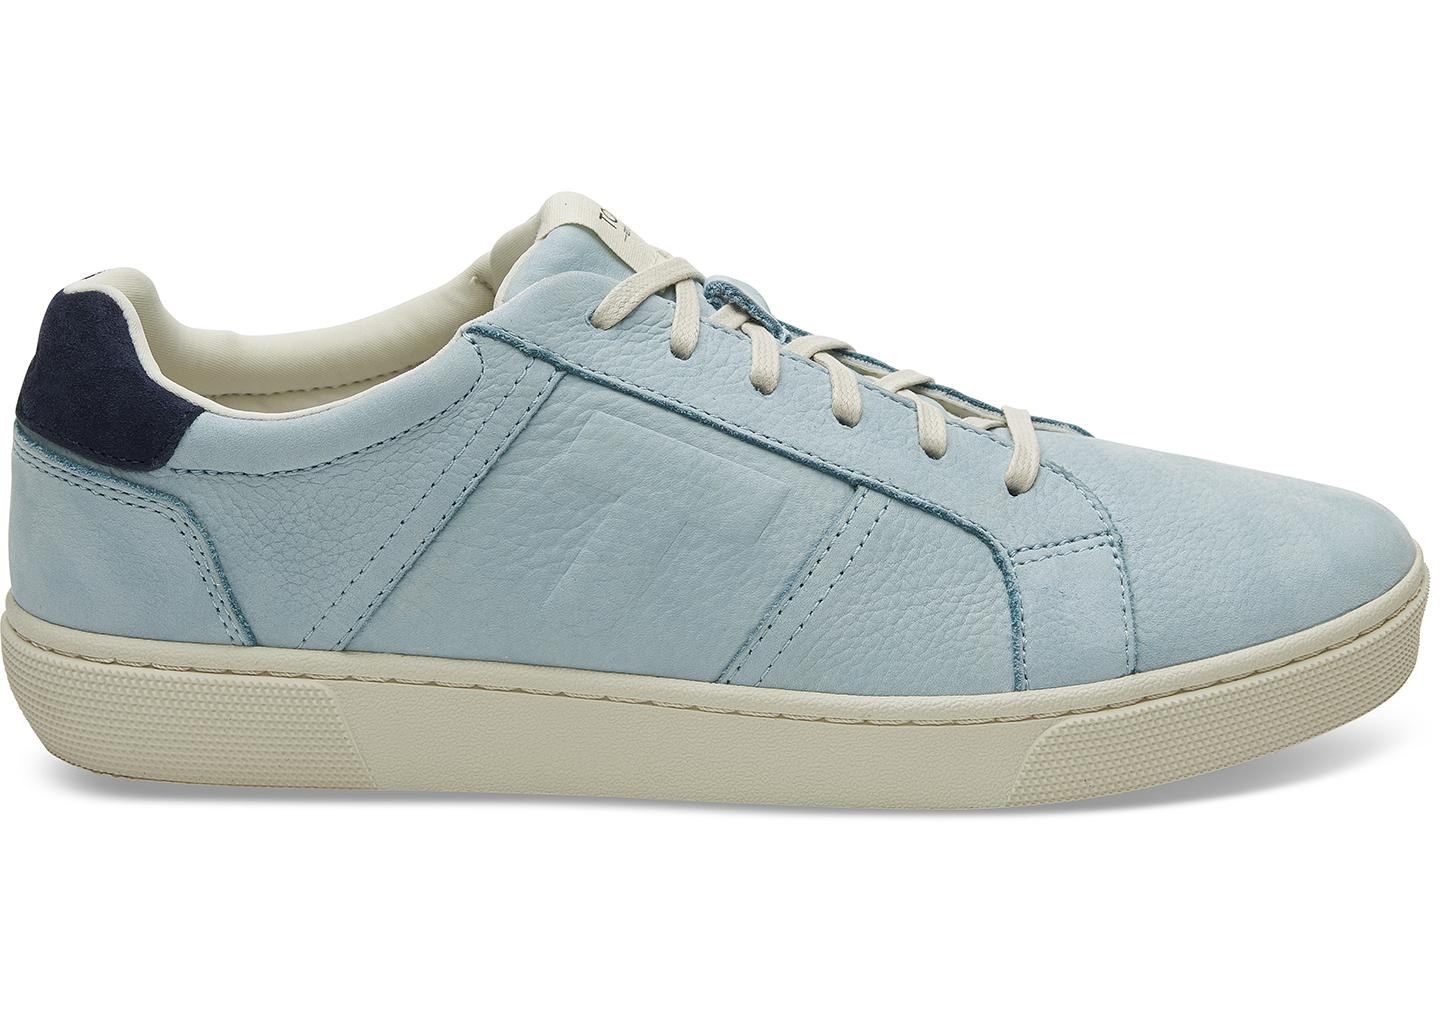 c12aa59831c6 Lyst - TOMS Pastel Turquoise Nubuck Leather Mens Leandro Sneakers in ...